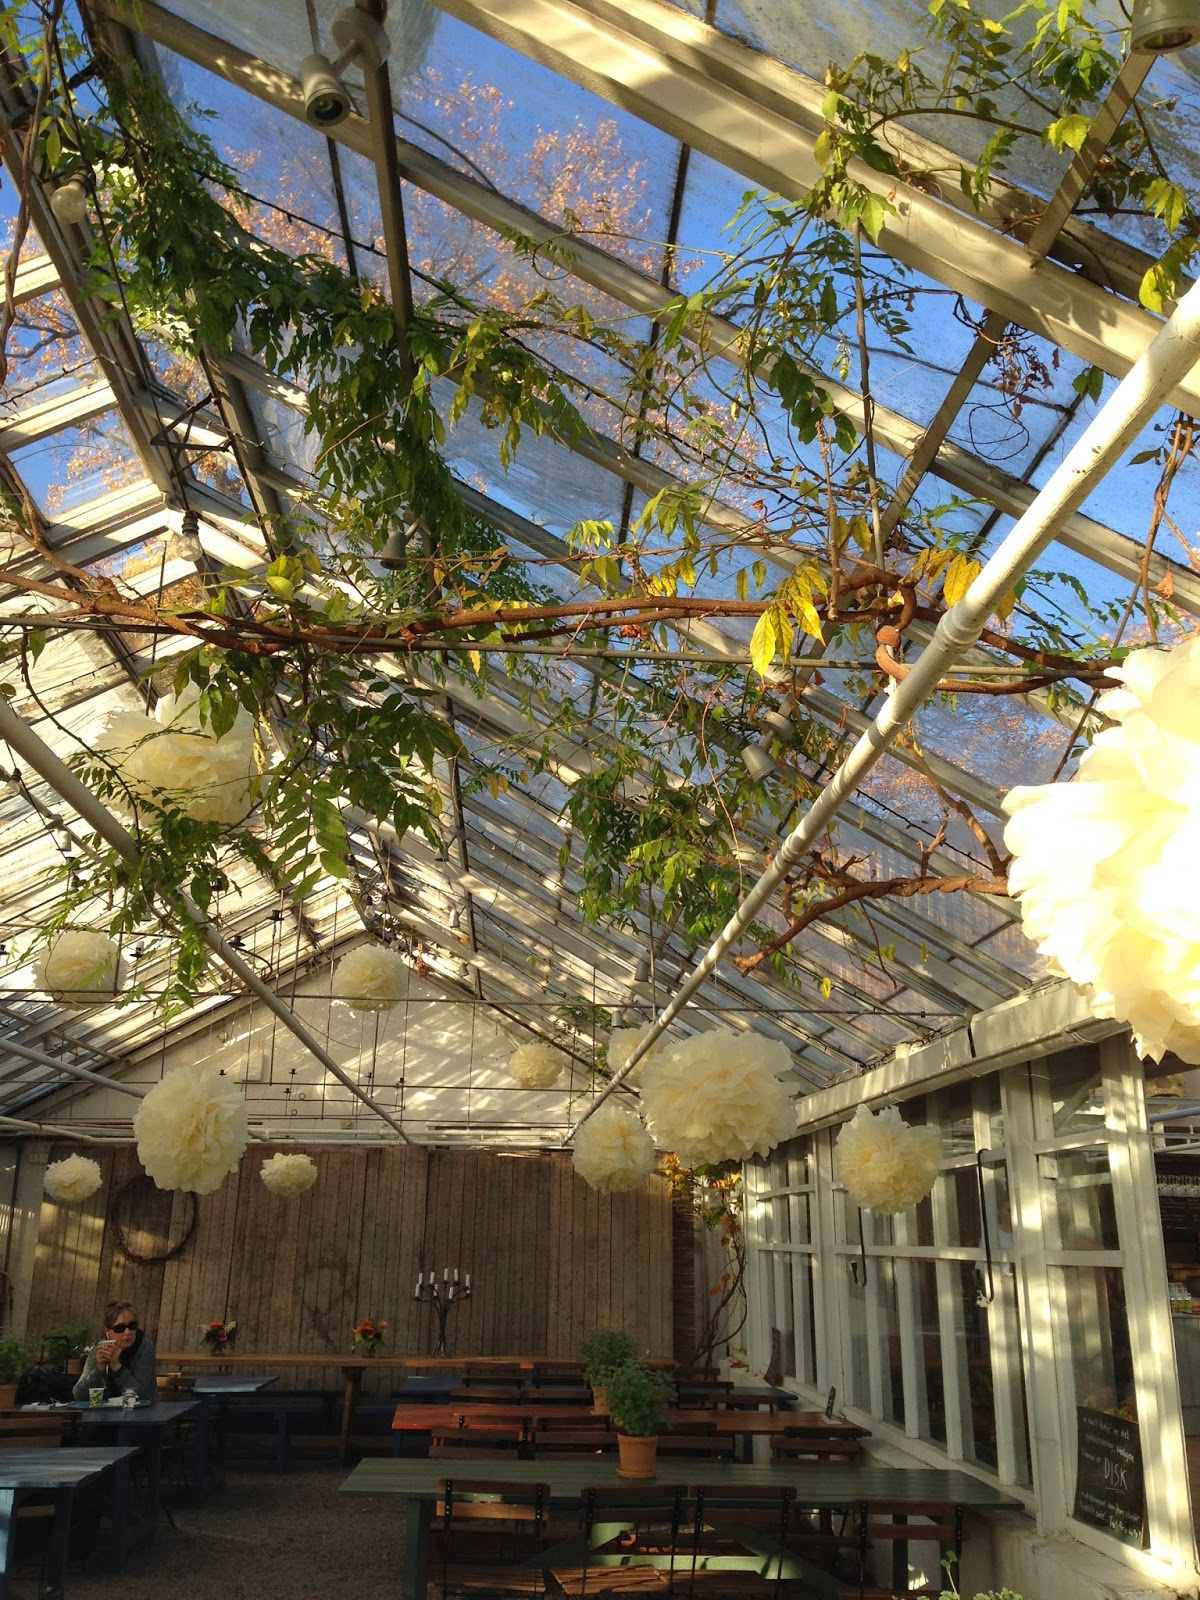 Wandering voyager: the greenhouse at rosendals trädgård in stockholm